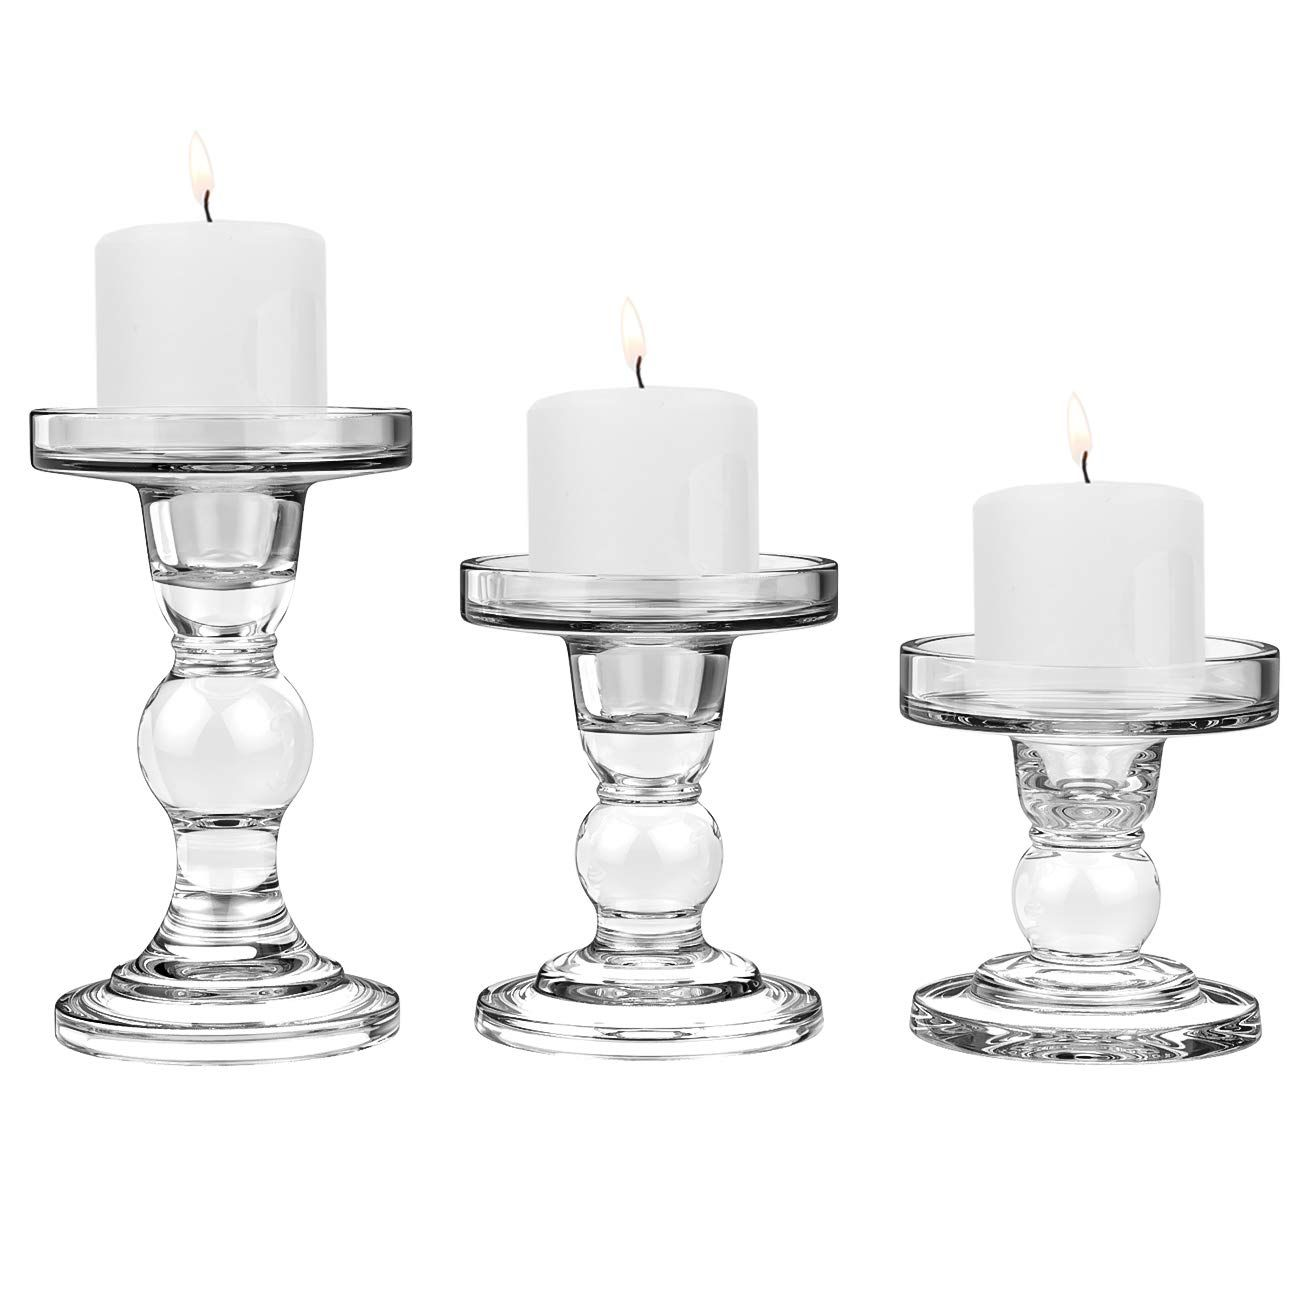 Clear Glass CYS EXCEL Glass Candle Holders for 4 Pillar or 3//4 Taper Candle Candlestick Pack of 2 PCS Candle Holder Height-5 Wedding Decoration